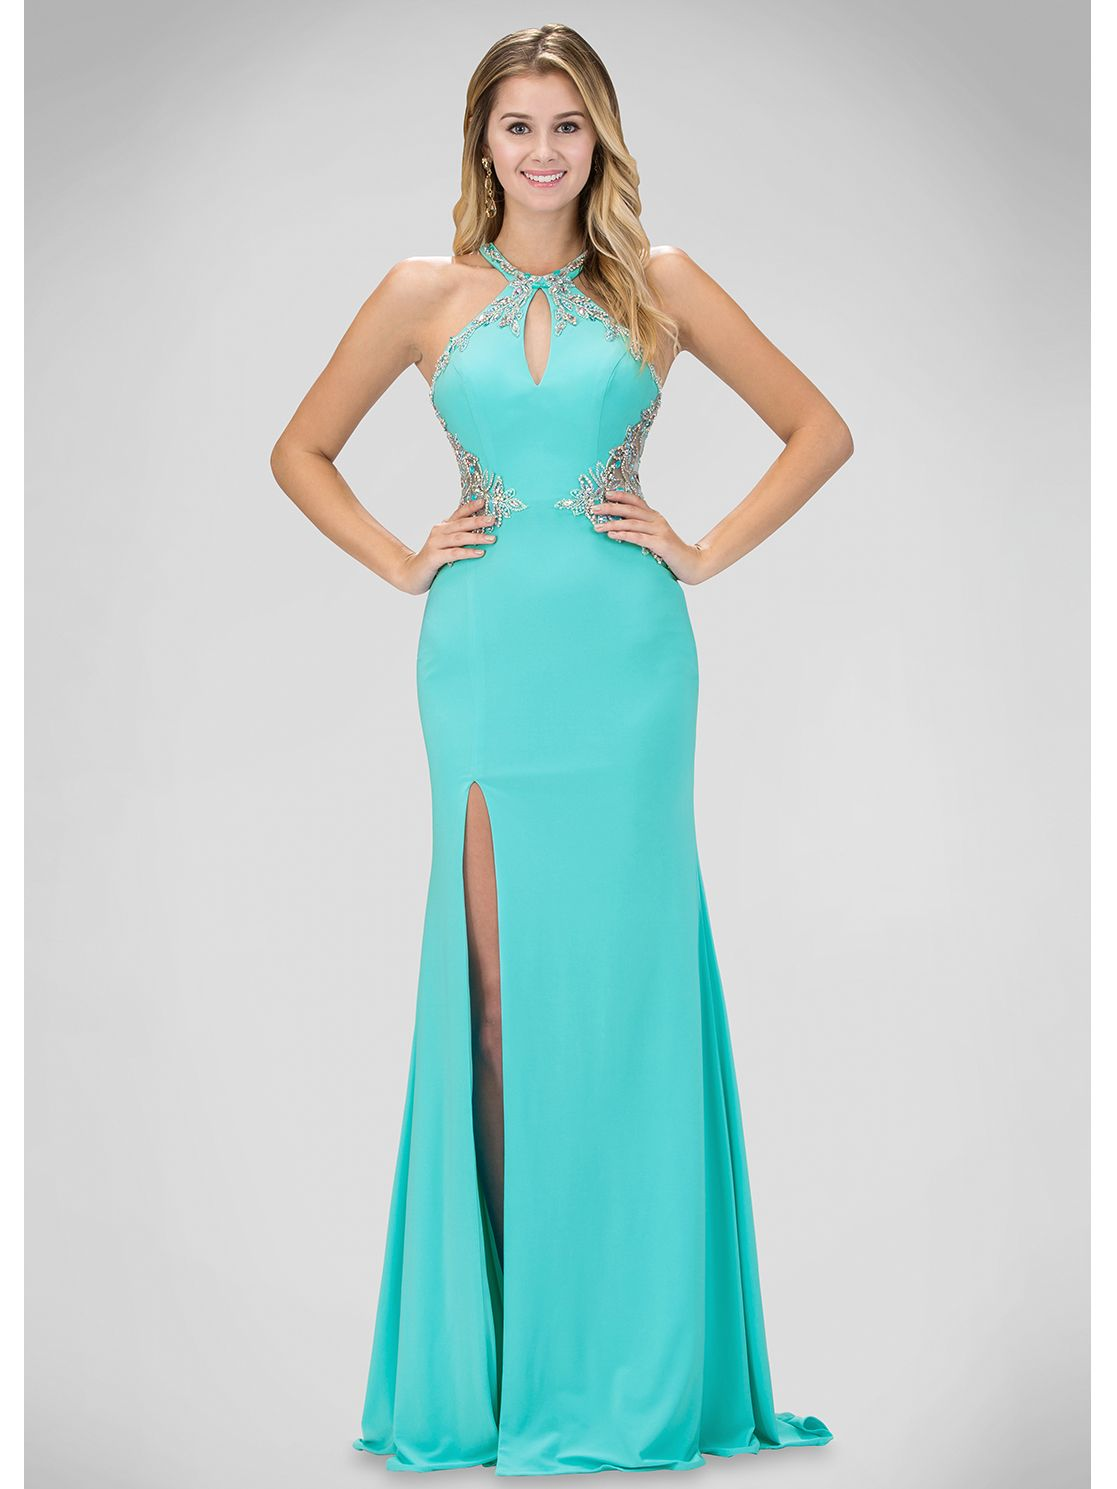 Halter Top Prom Evening Dress with Slit | Sung Boutique L.A. | Prom ...